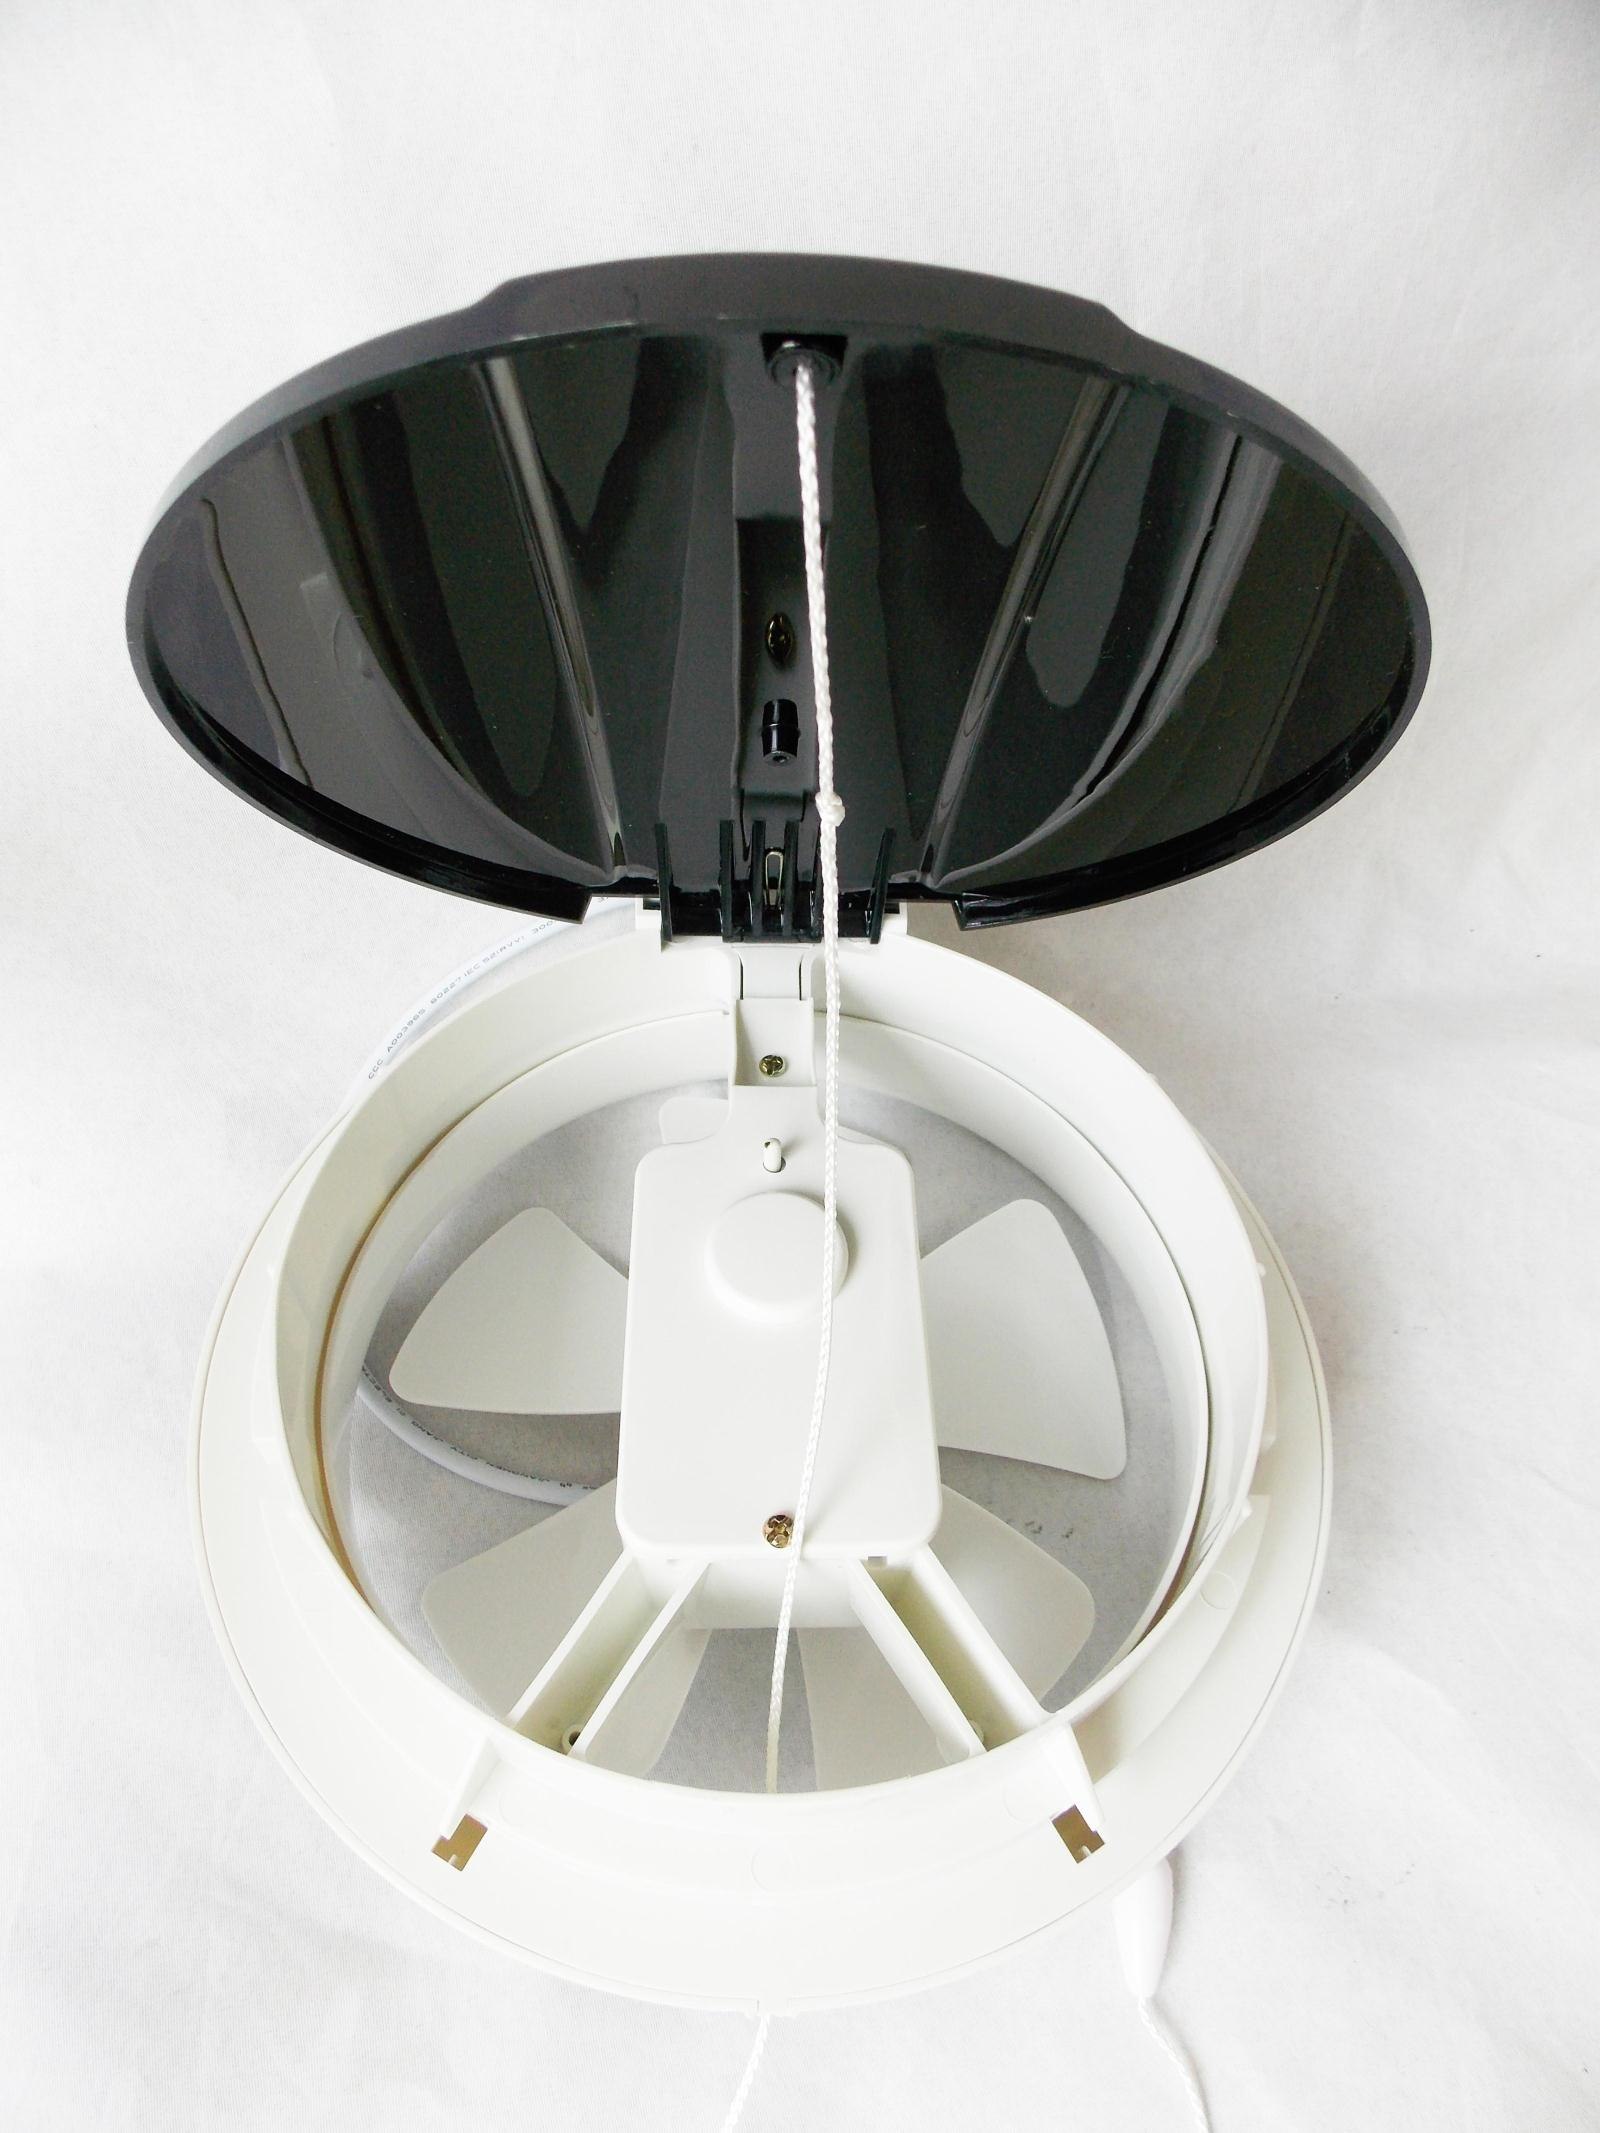 Round glass window exhaust fan exhaust fan bathroom for 6 bathroom exhaust fan